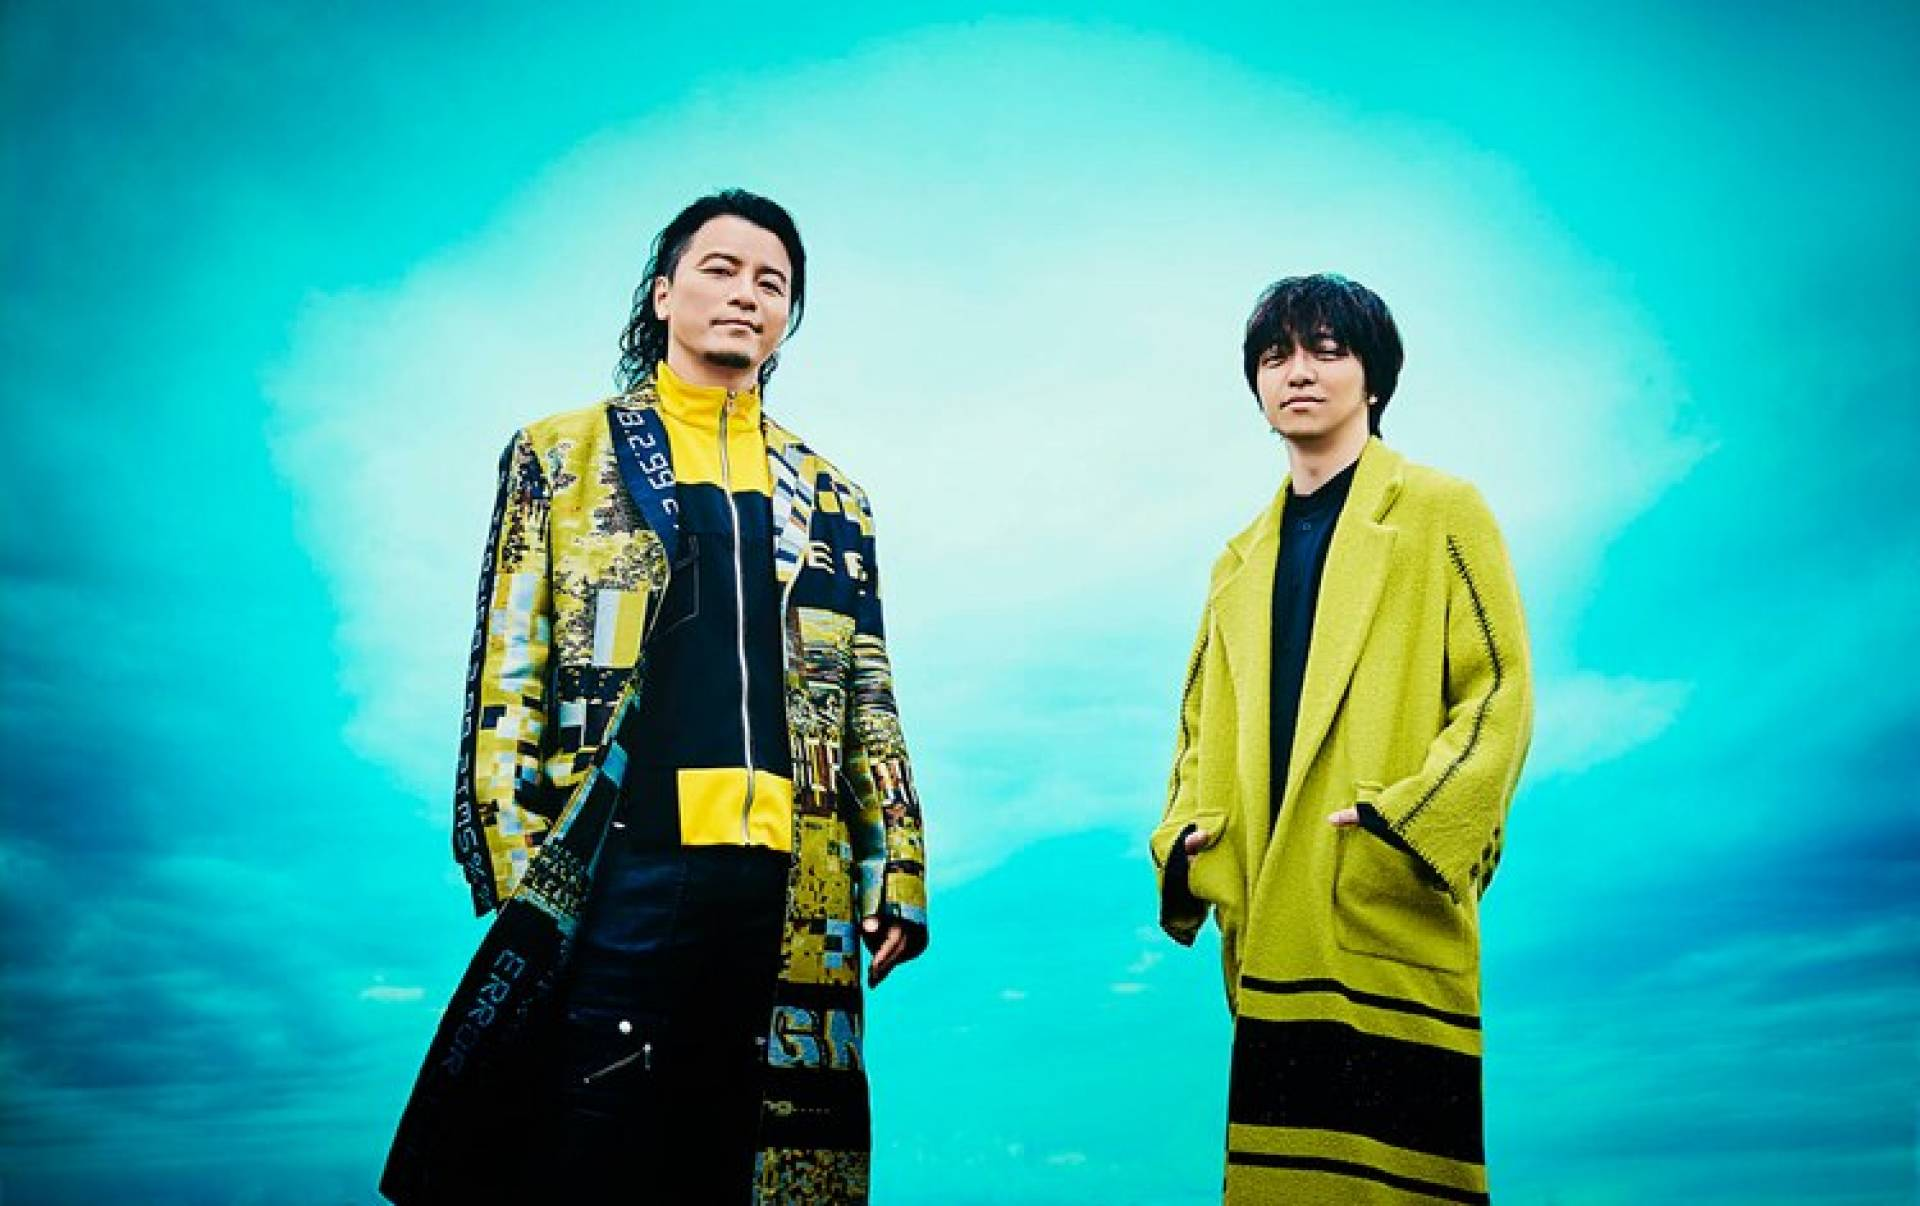 KREVA will release a new single featuring a collaboration with Daichi Miura on December 23rd.